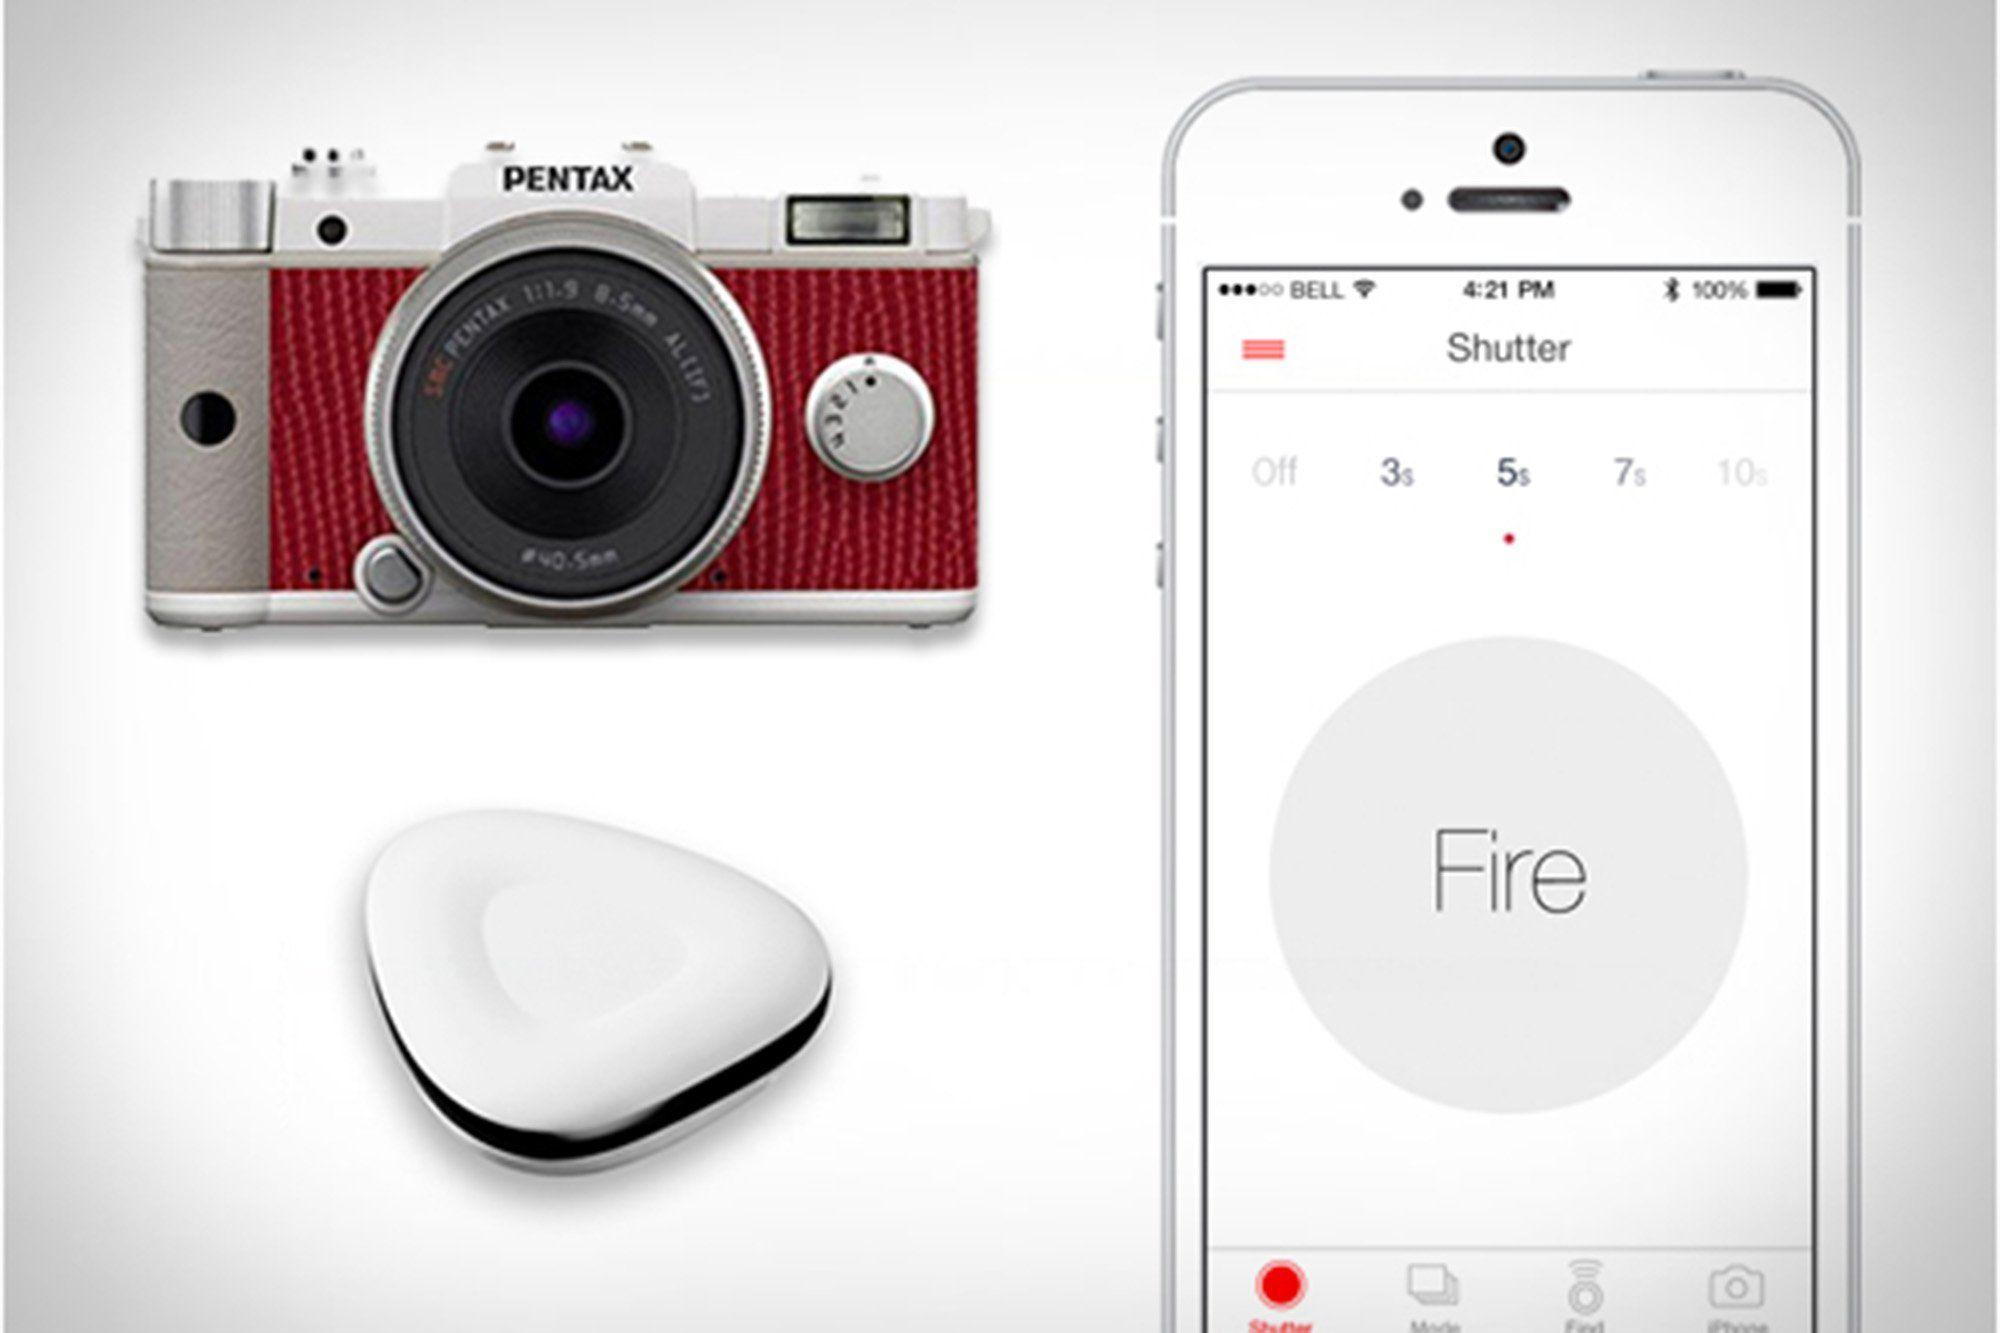 A wireless remote that lets you control your DSLR camera